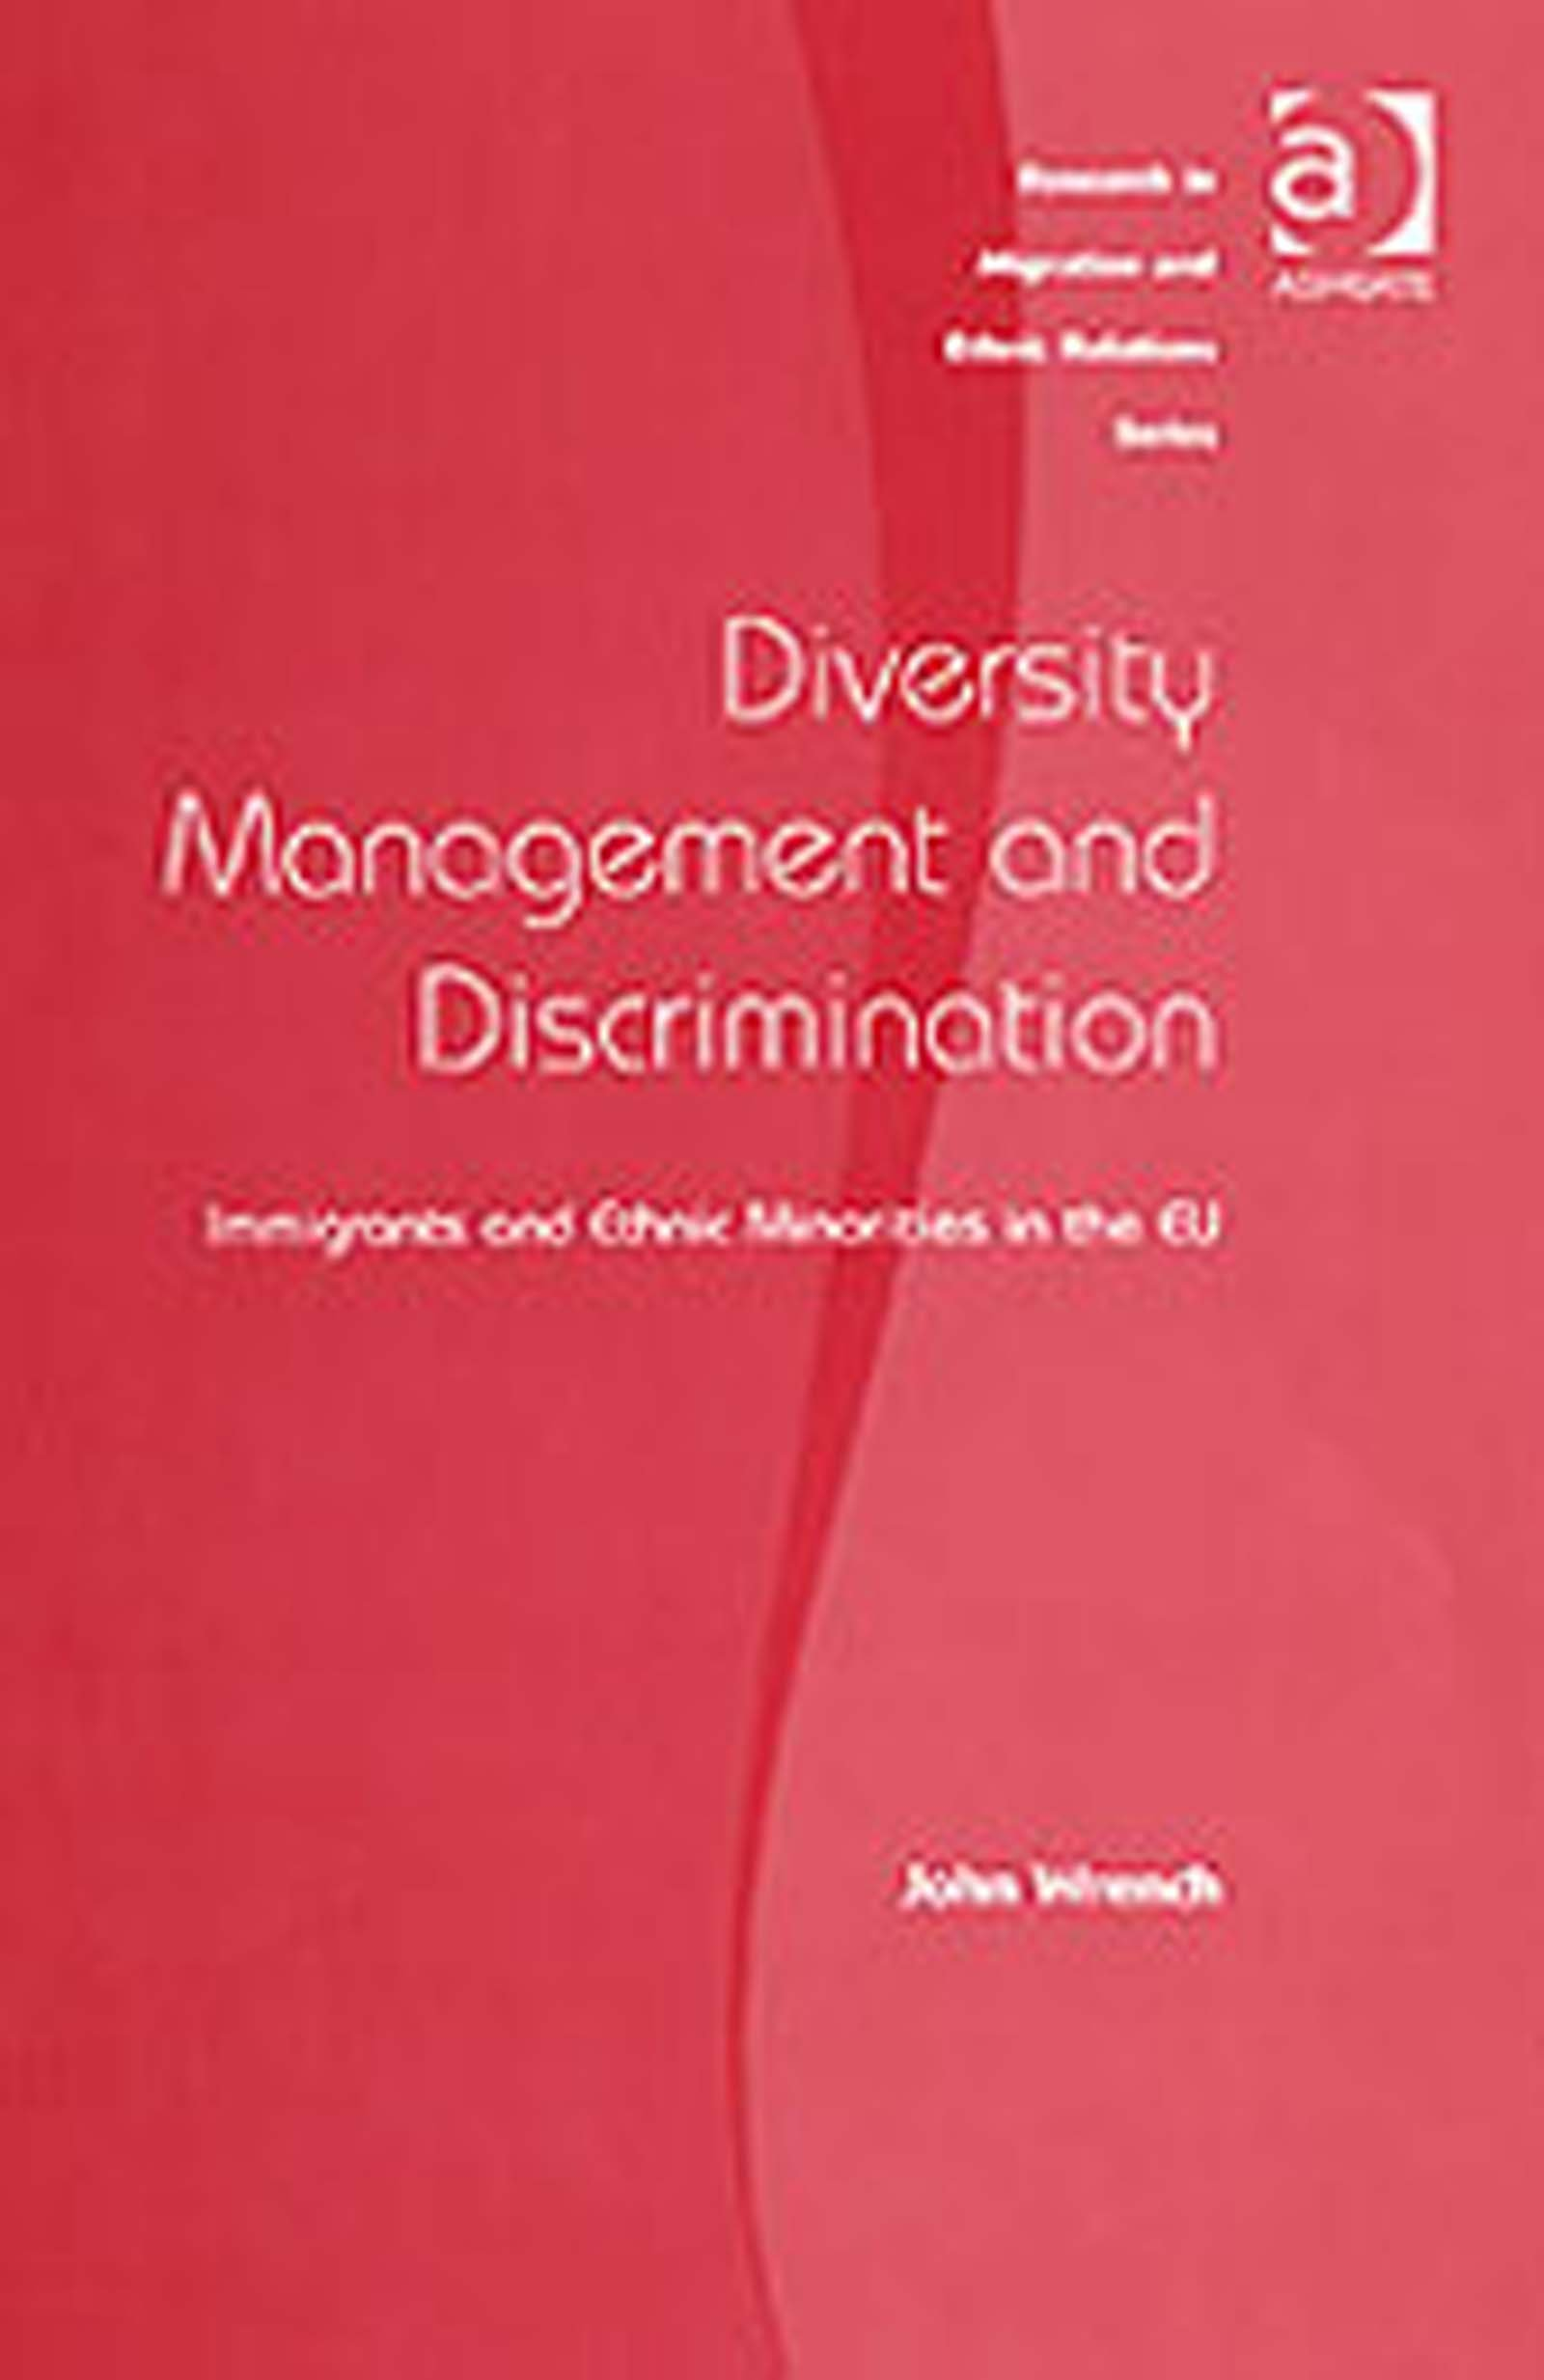 Diversity Management and Discrimination: Immigrants and Ethnic Minorities in the EU (Research in Migration and Ethnic Relations Series)